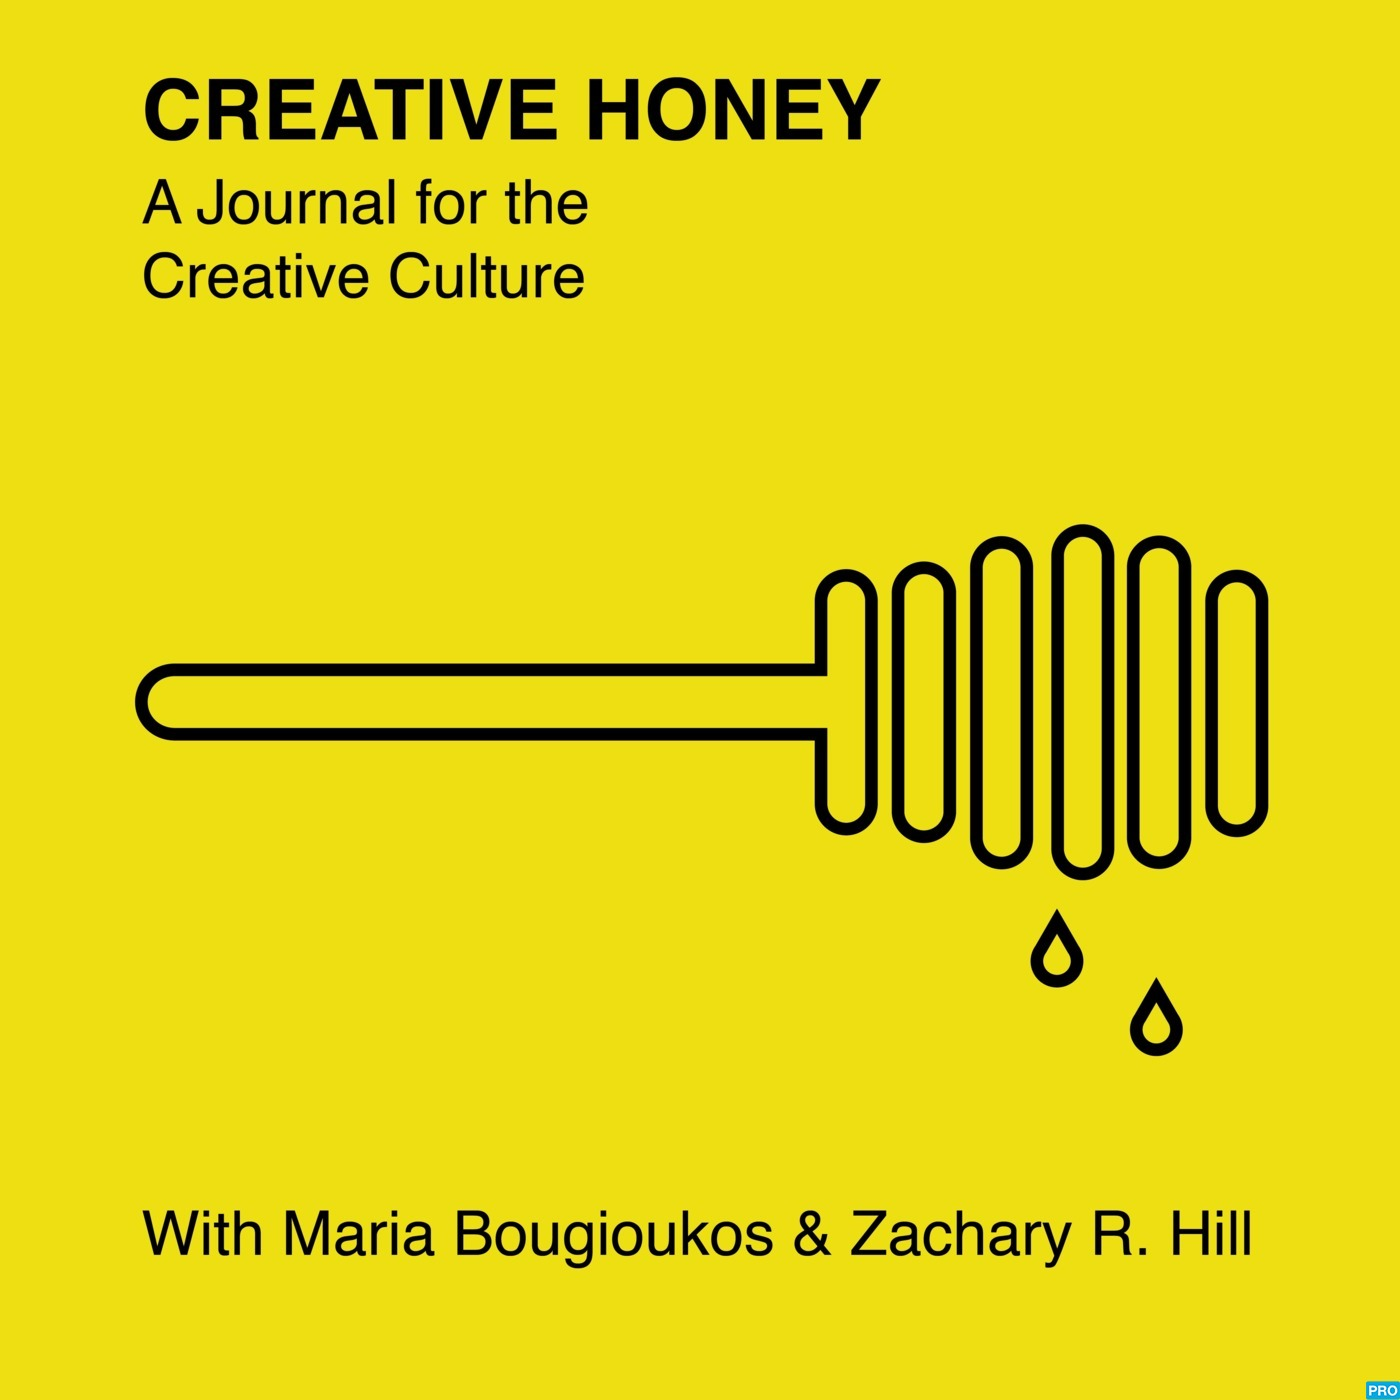 Creative Honey